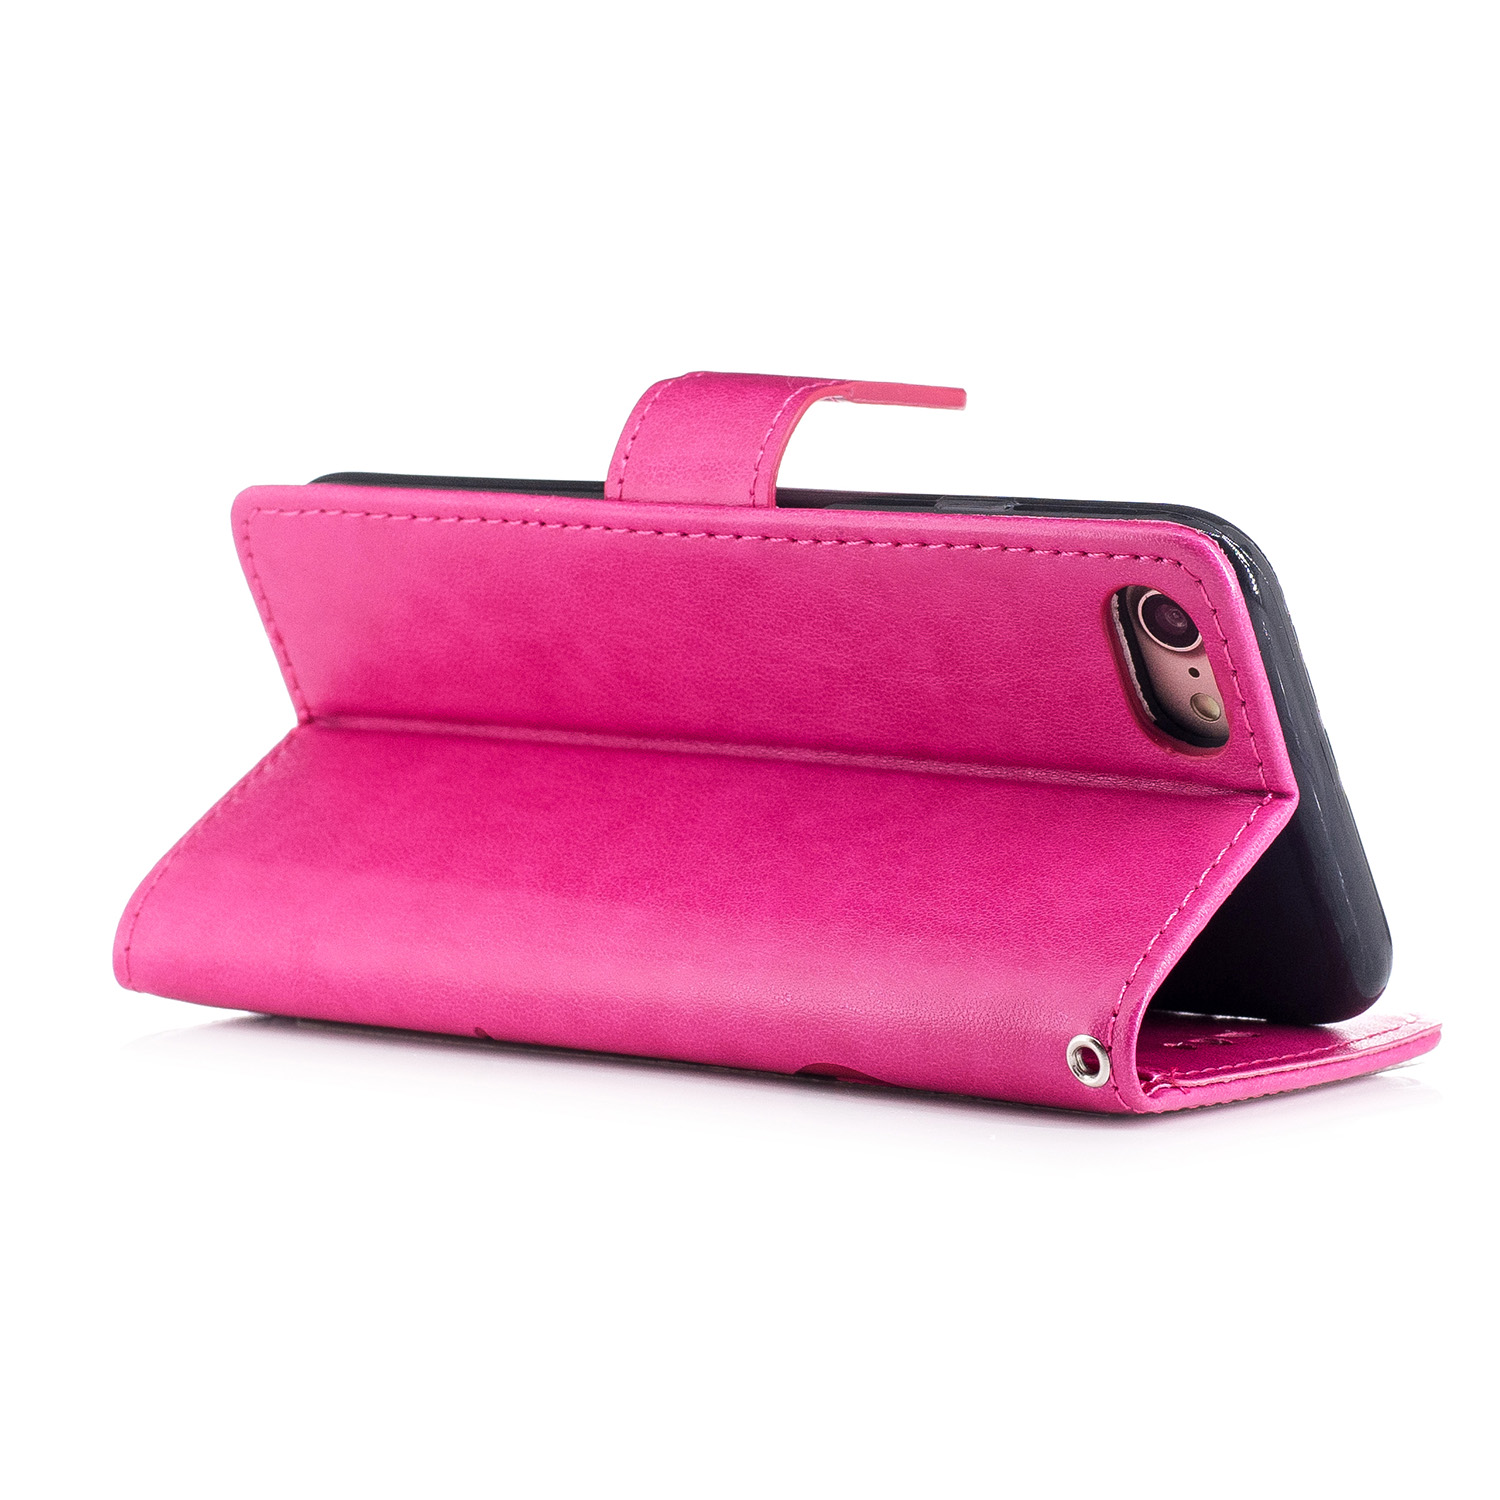 Embossed Leather Sleeve for Apple iPhone 7 iPhone7 for Apple iPhone 7 Phone7 Phone Cover A1780 A1778 A1779 A1660 4.7 inch Case